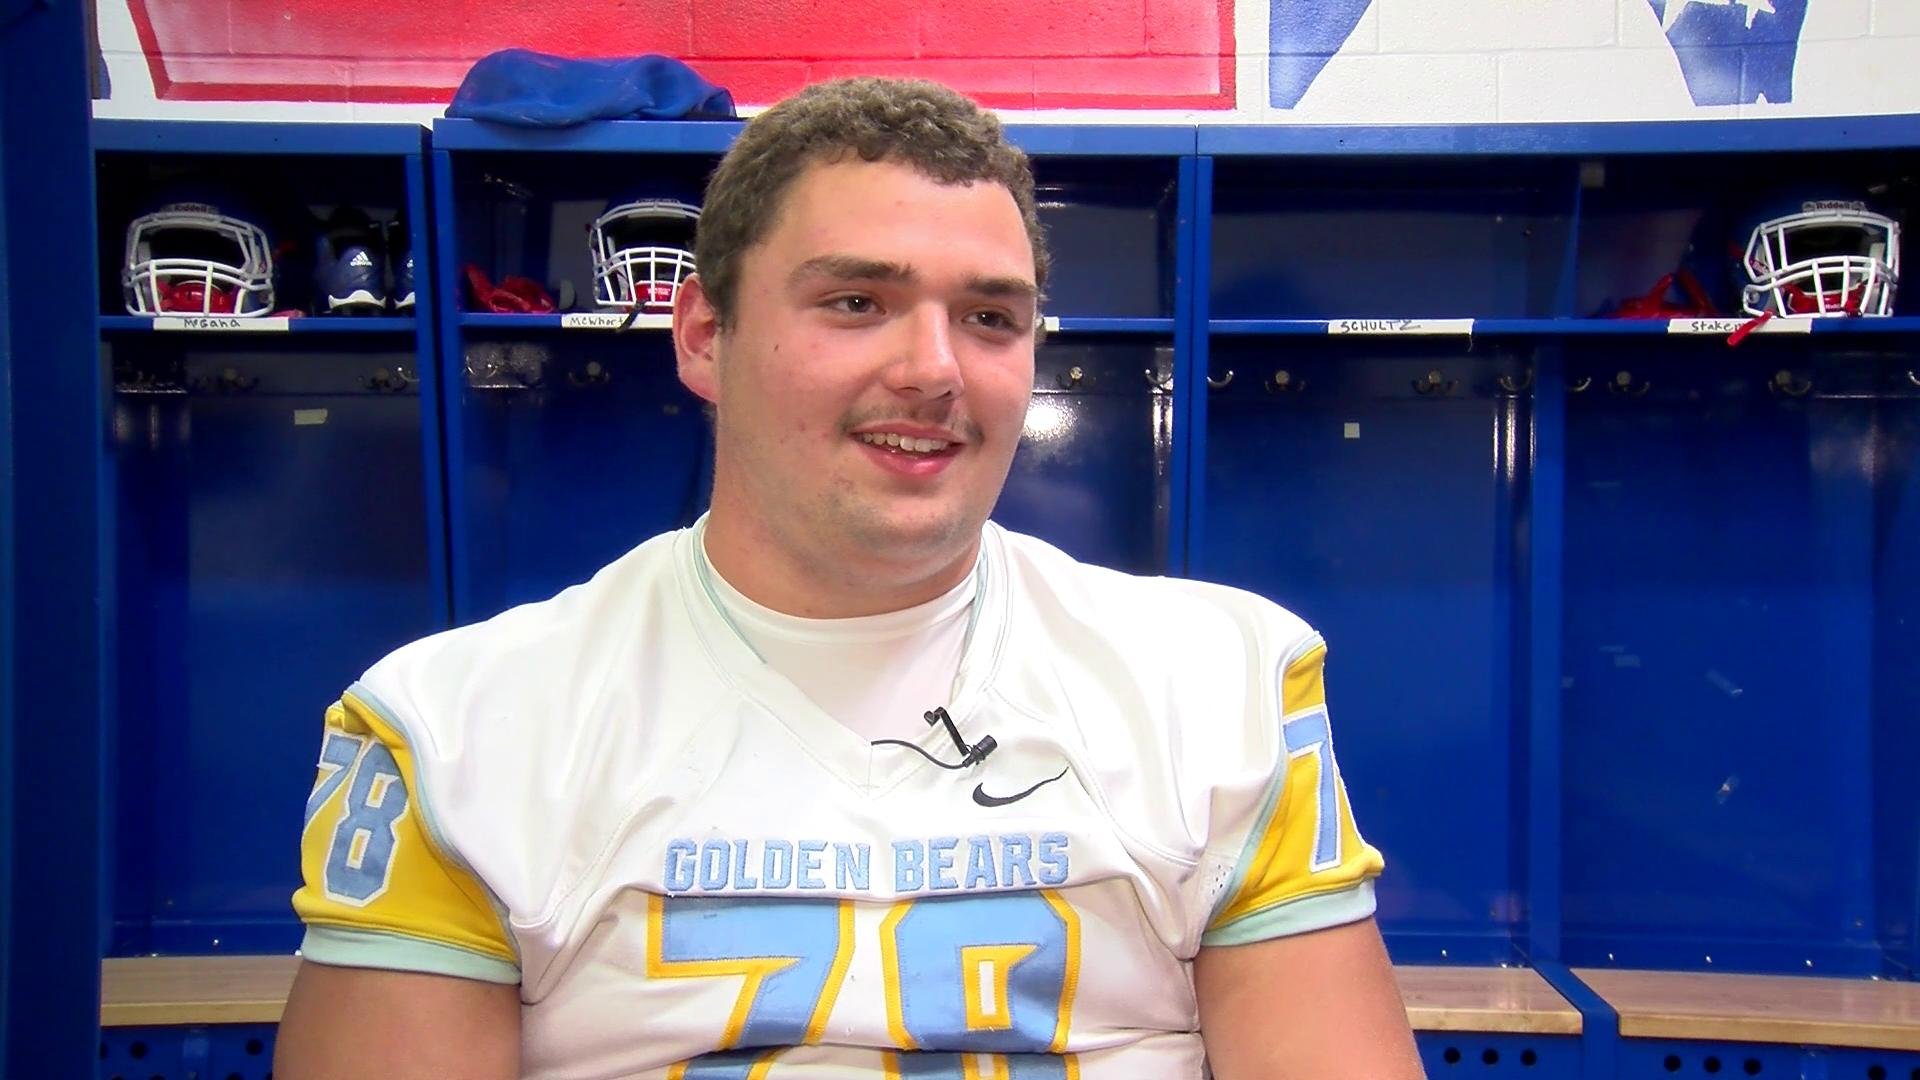 VIDEO 2016 Media Day:  Isaac Rosehac